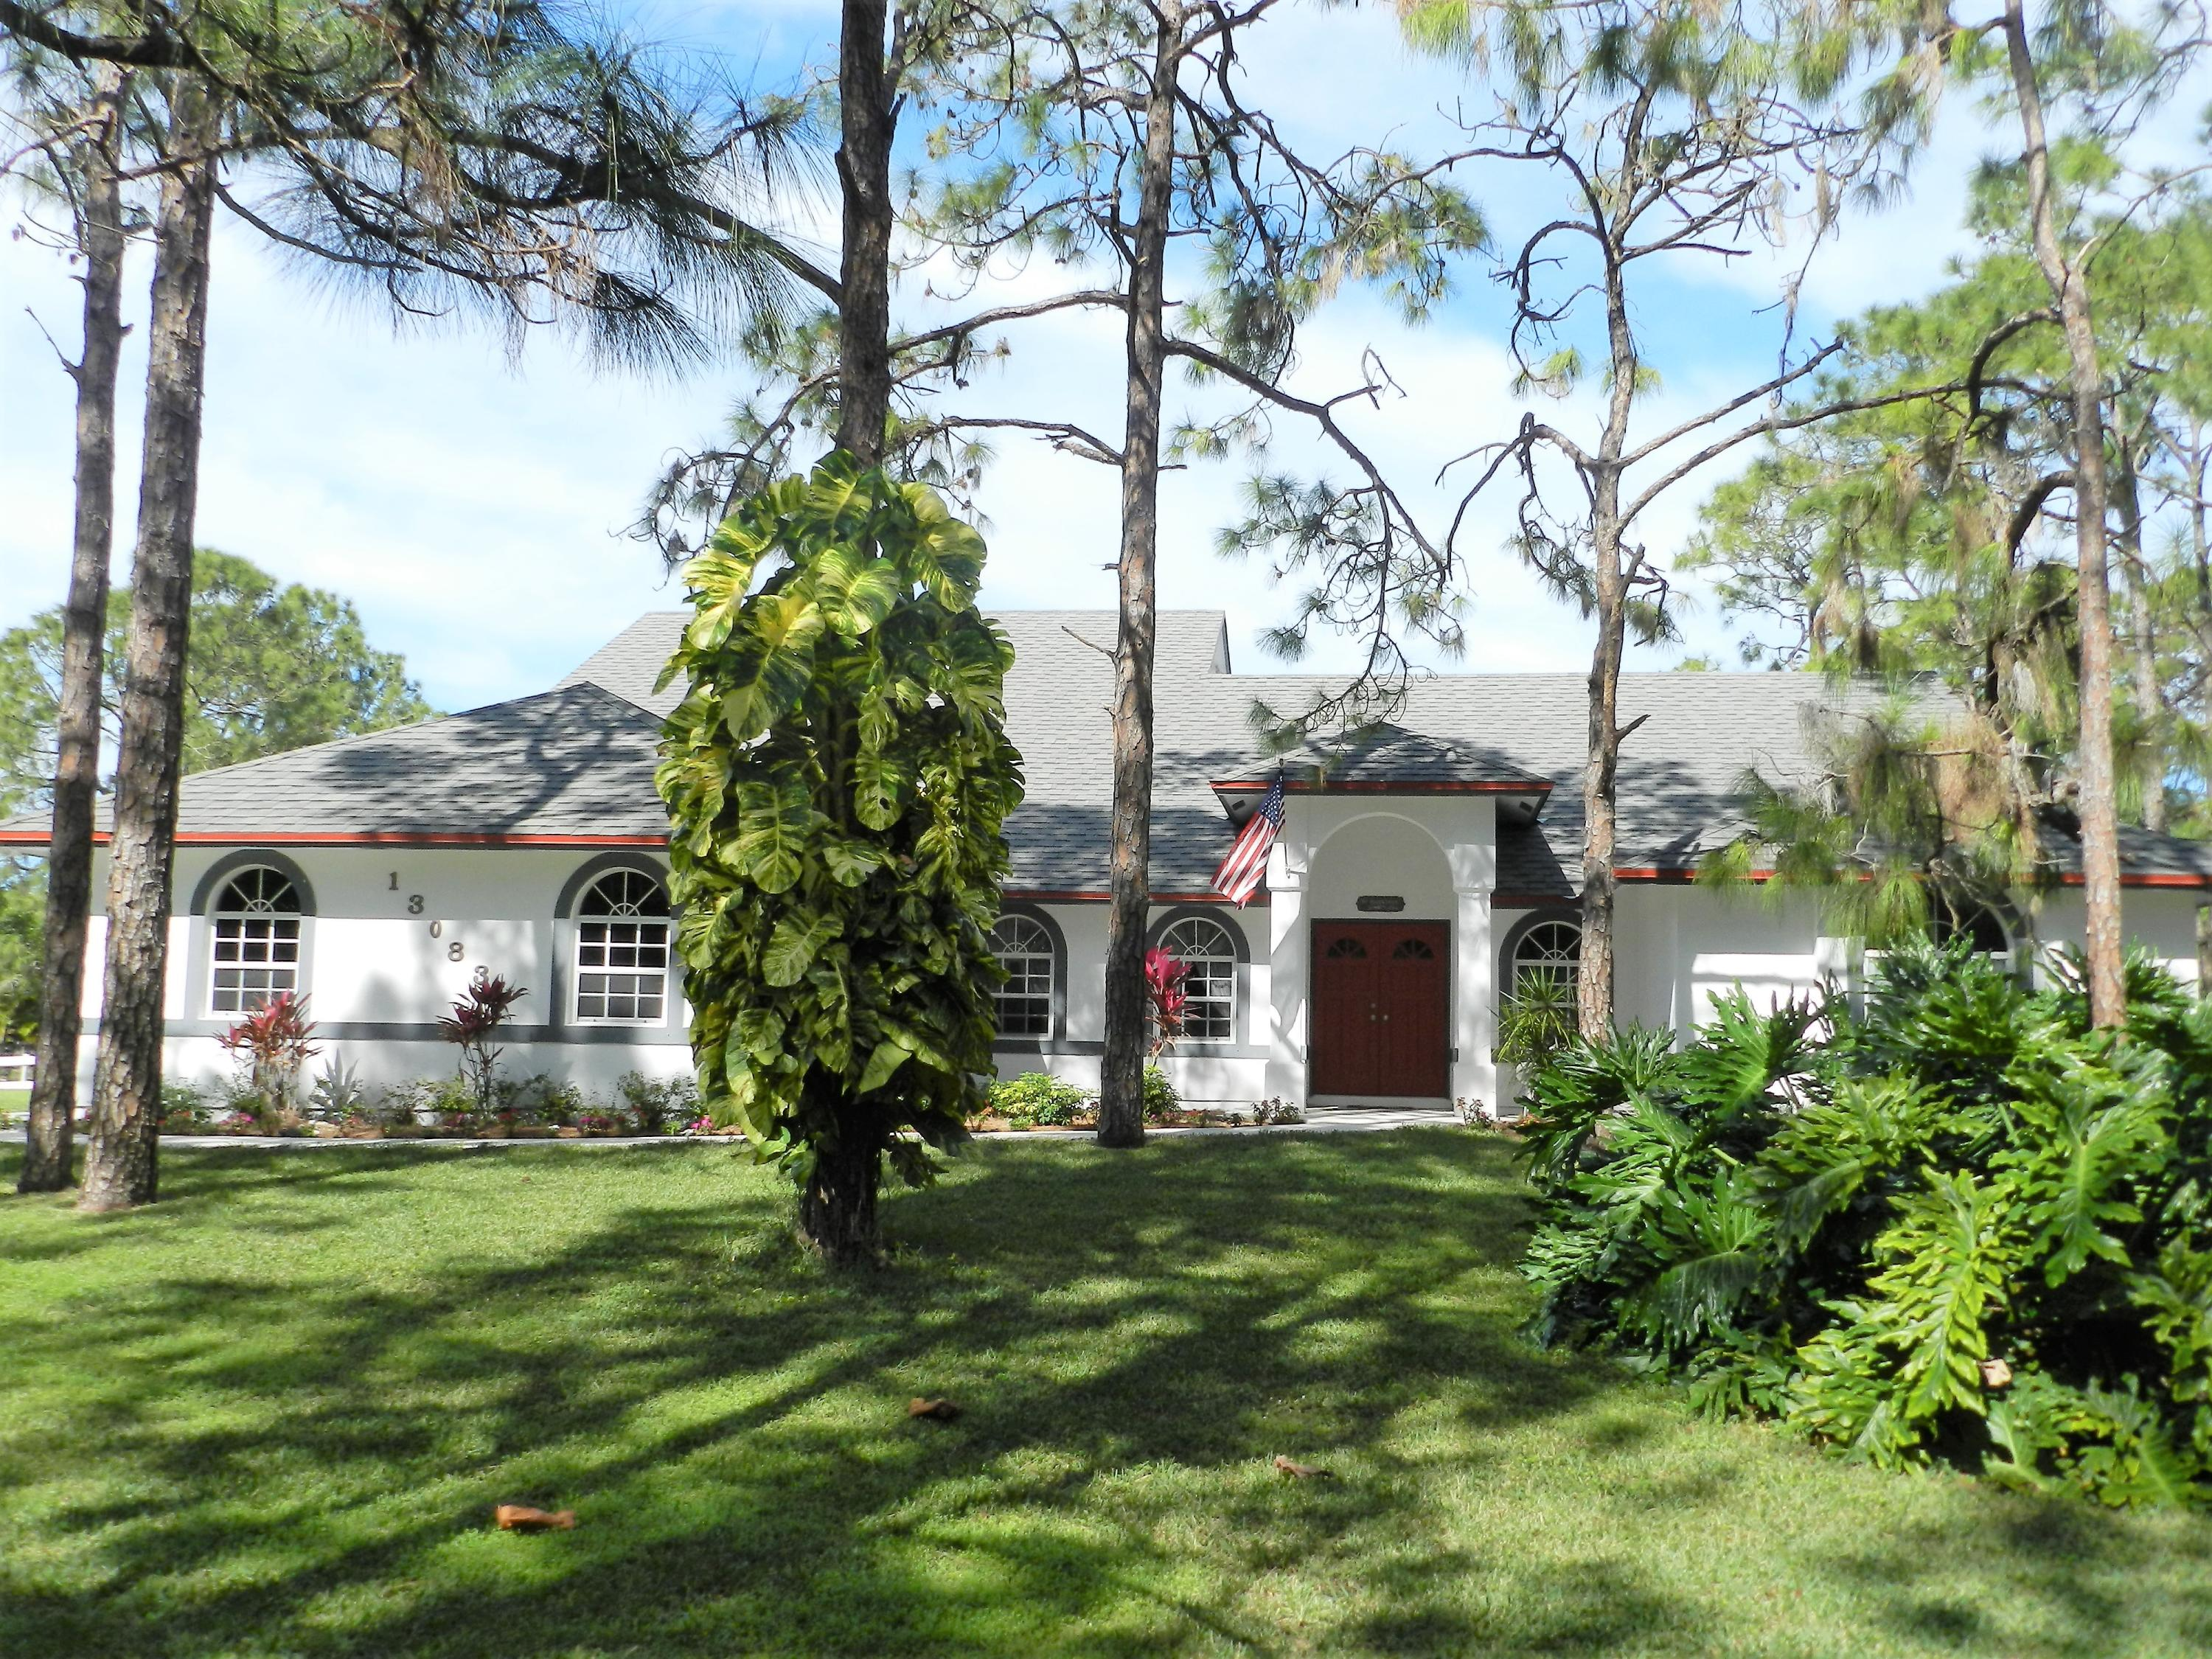 Home for sale in Unicorporated West Palm Beach Florida